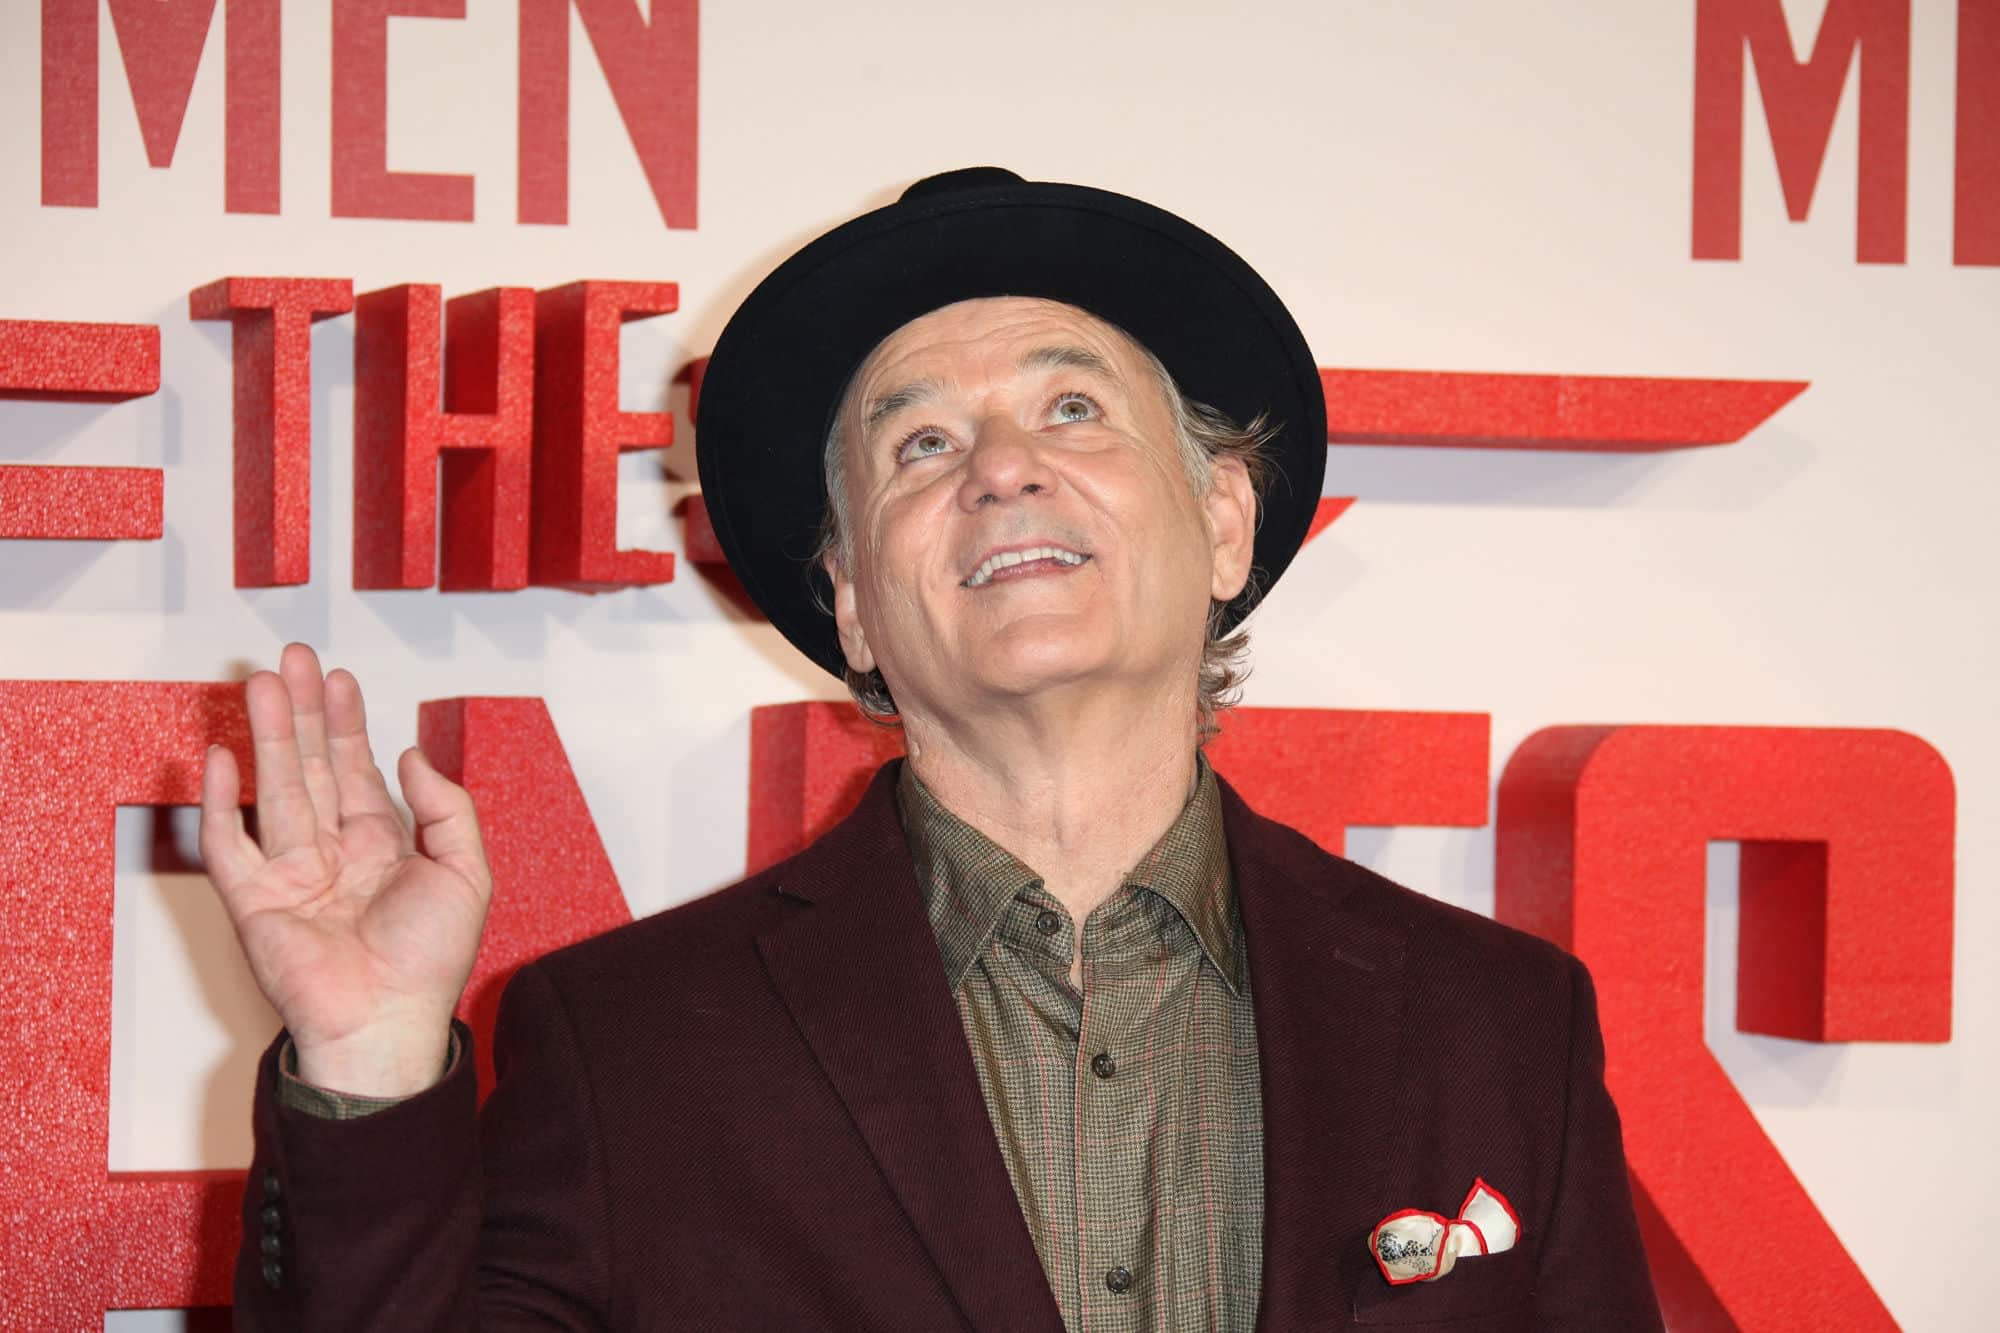 Bill Murray to be Honored for Lifetime of Work by Wes Anderson